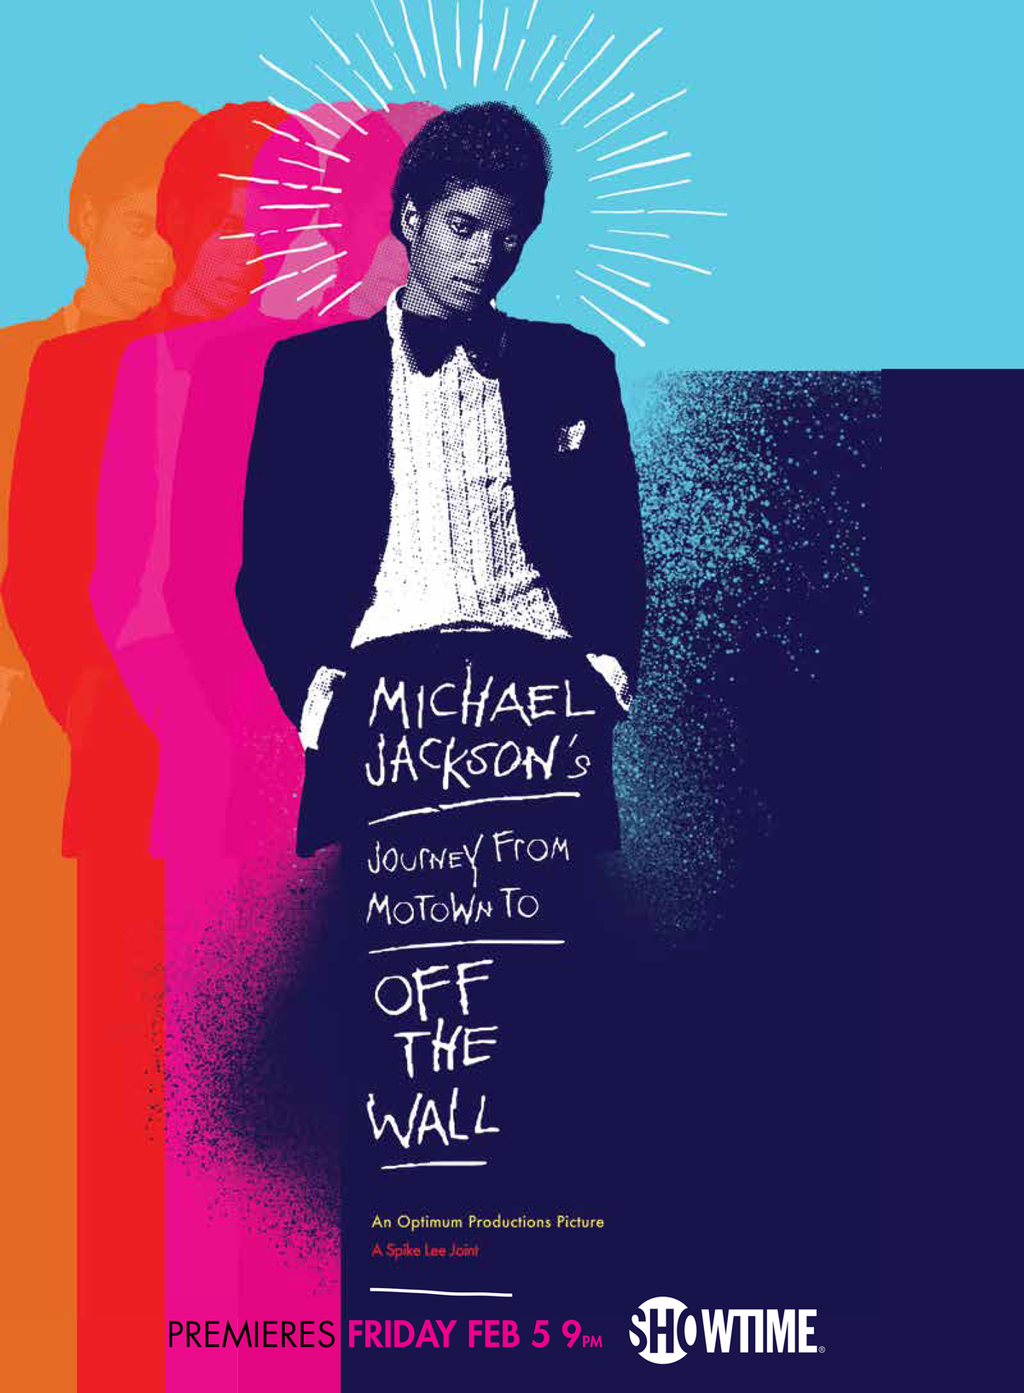 'MICHAEL JACKSON's Journey From Motown To Off The Wall' Will Premiere on Showtime Friday, February 5 at 9 PM ET/PT